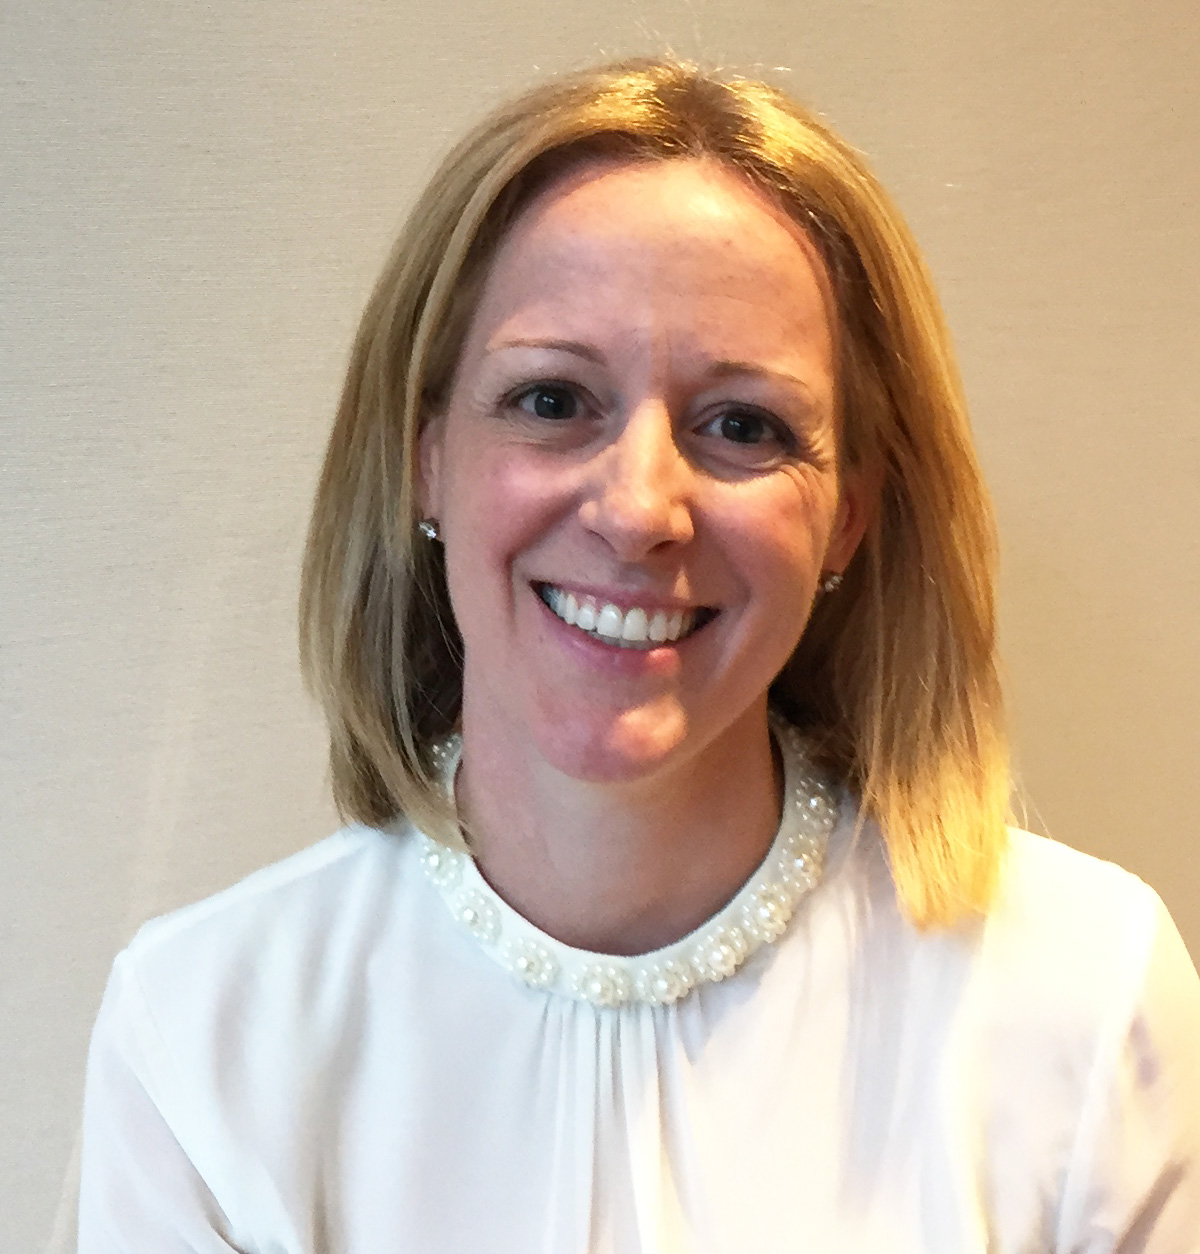 Saffery Champness appoints Manchester partner